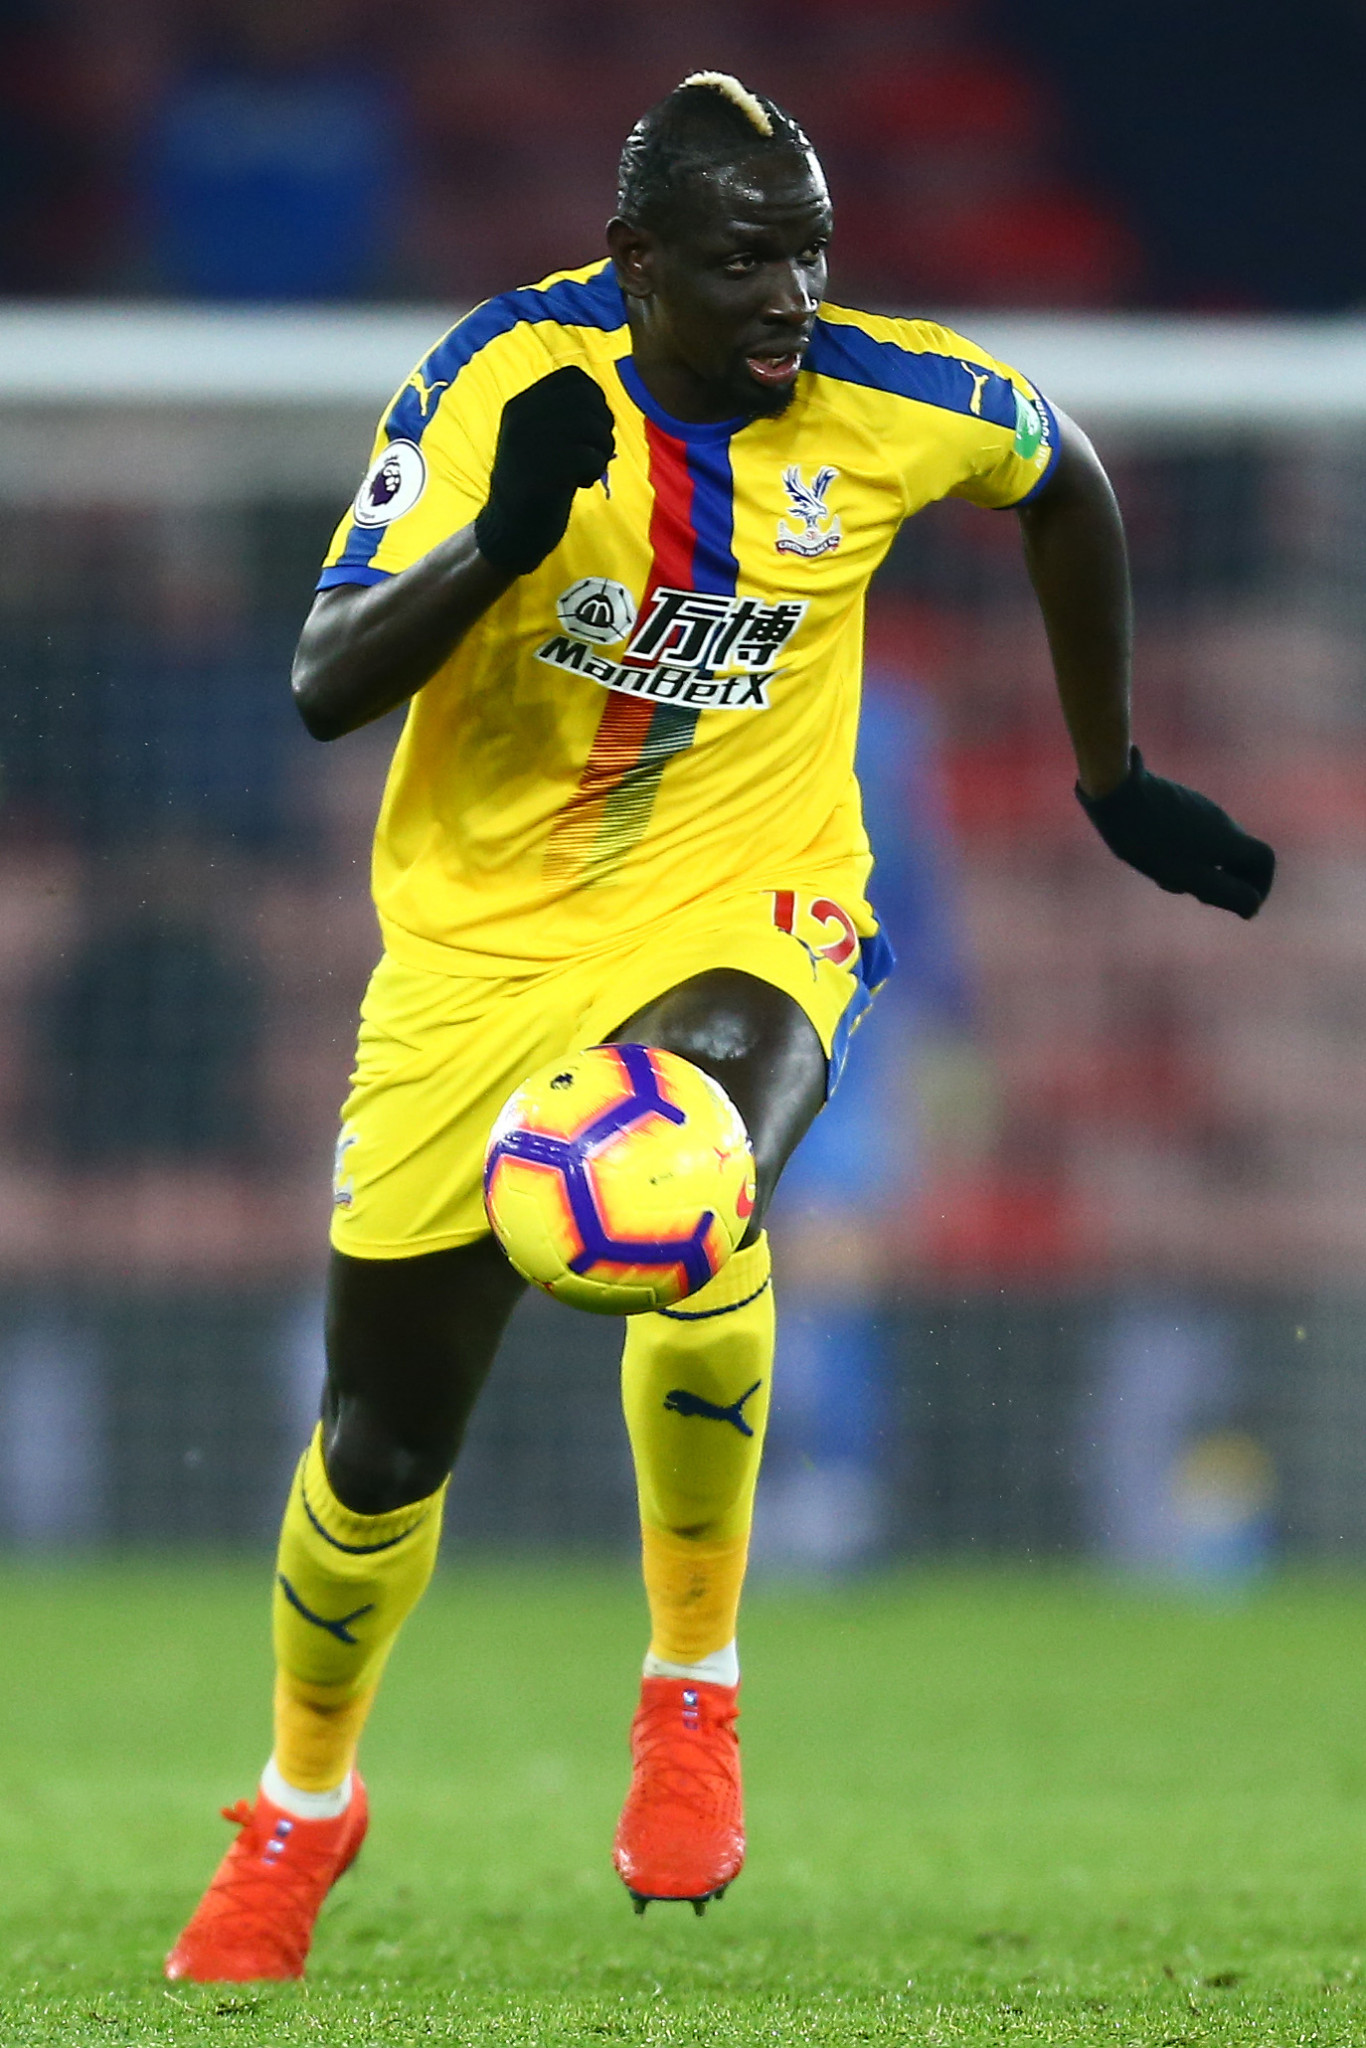 Premier League footballer Mamadou Sakho is suing the World Anti-Doping Agency ©Getty Images